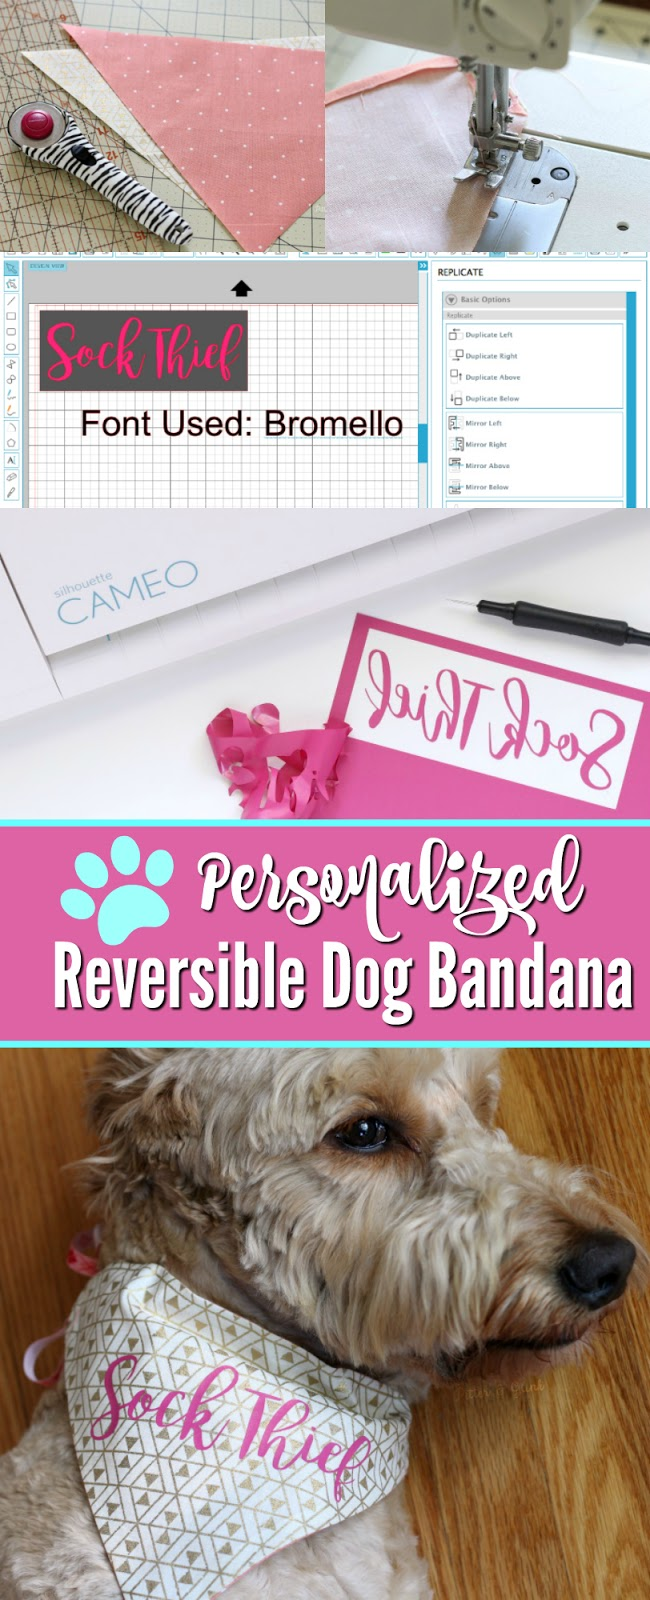 How to Make a Reversible, Personalized Dog Bandana | Use basic sewing skills, your Silhouette and HTV to create a unique pet accessory. pitterandglink.com